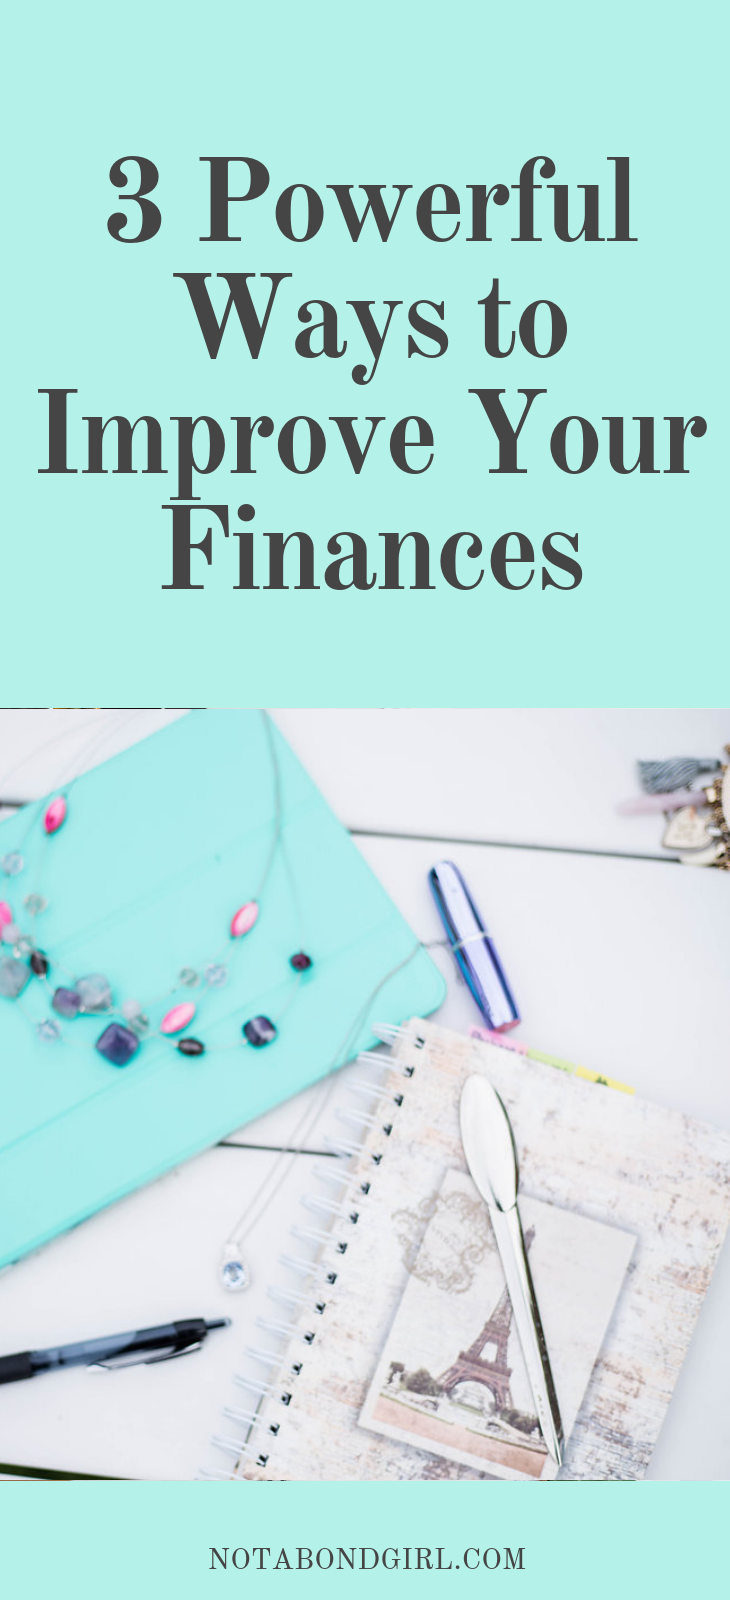 3 Powerful Ways to Improve Your Finances Right Now, financial situation, financial health, financial literacy, make money blogging, financial independence retire early #personalfinance #financialplanning #money #finance #earlyretirement #financialfreedom #FIREMovement